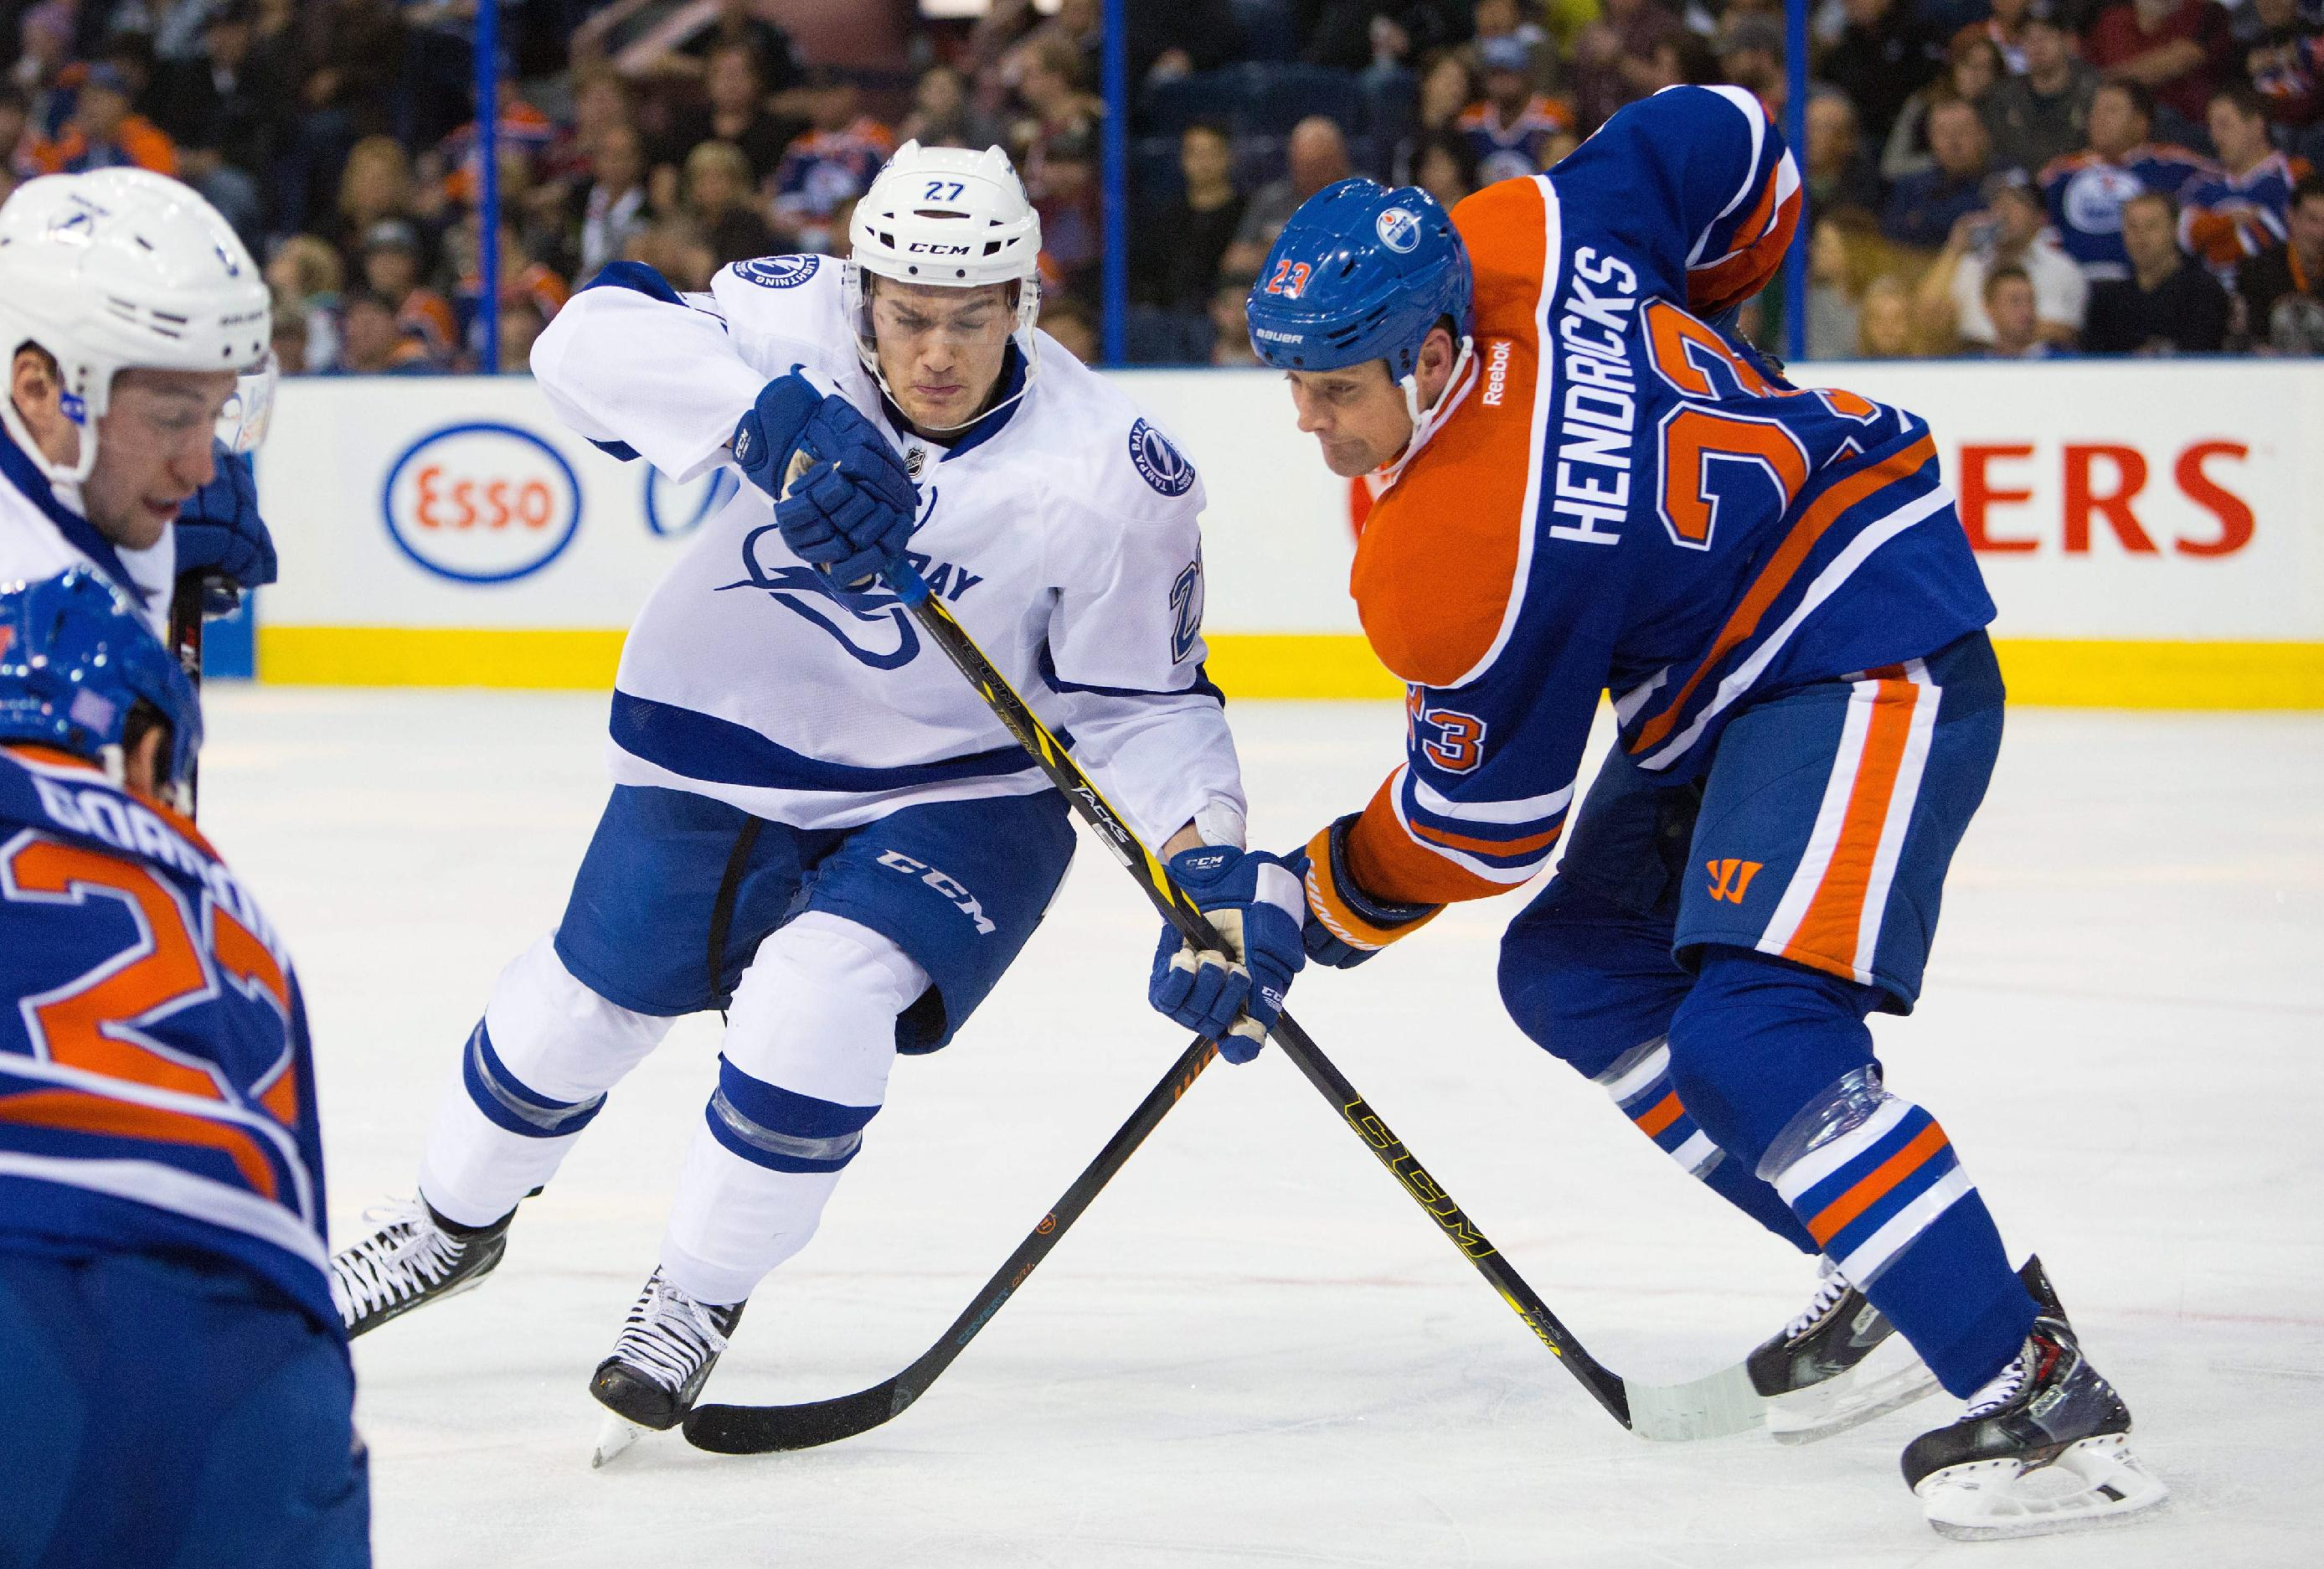 Jonathan Drouin's expectations high at start of NHL career